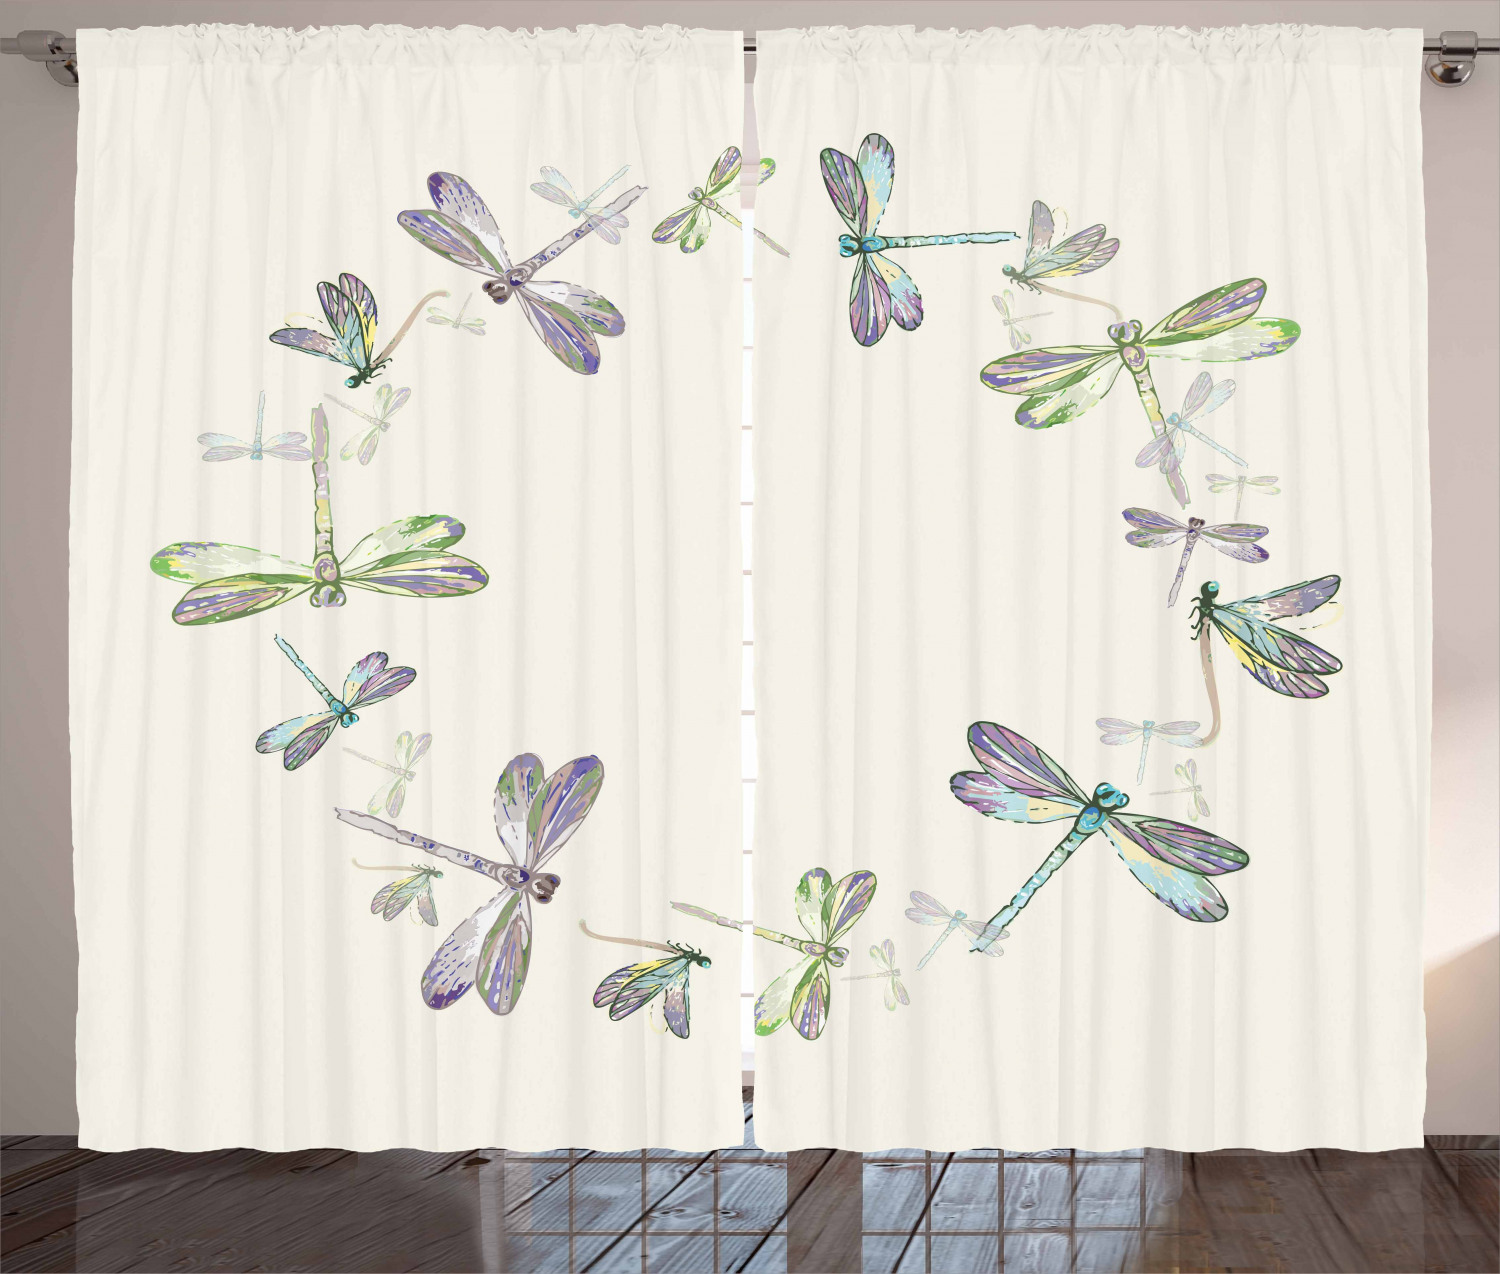 Dragonfly Curtains 2 Panels Set Dragonflies In Circular Formation Hand Drawn Woodland Animals With Retro Effect Window Drapes For Living Room Bedroom 108w X 84l Inches Multicolor By Ambesonne Walmart Com